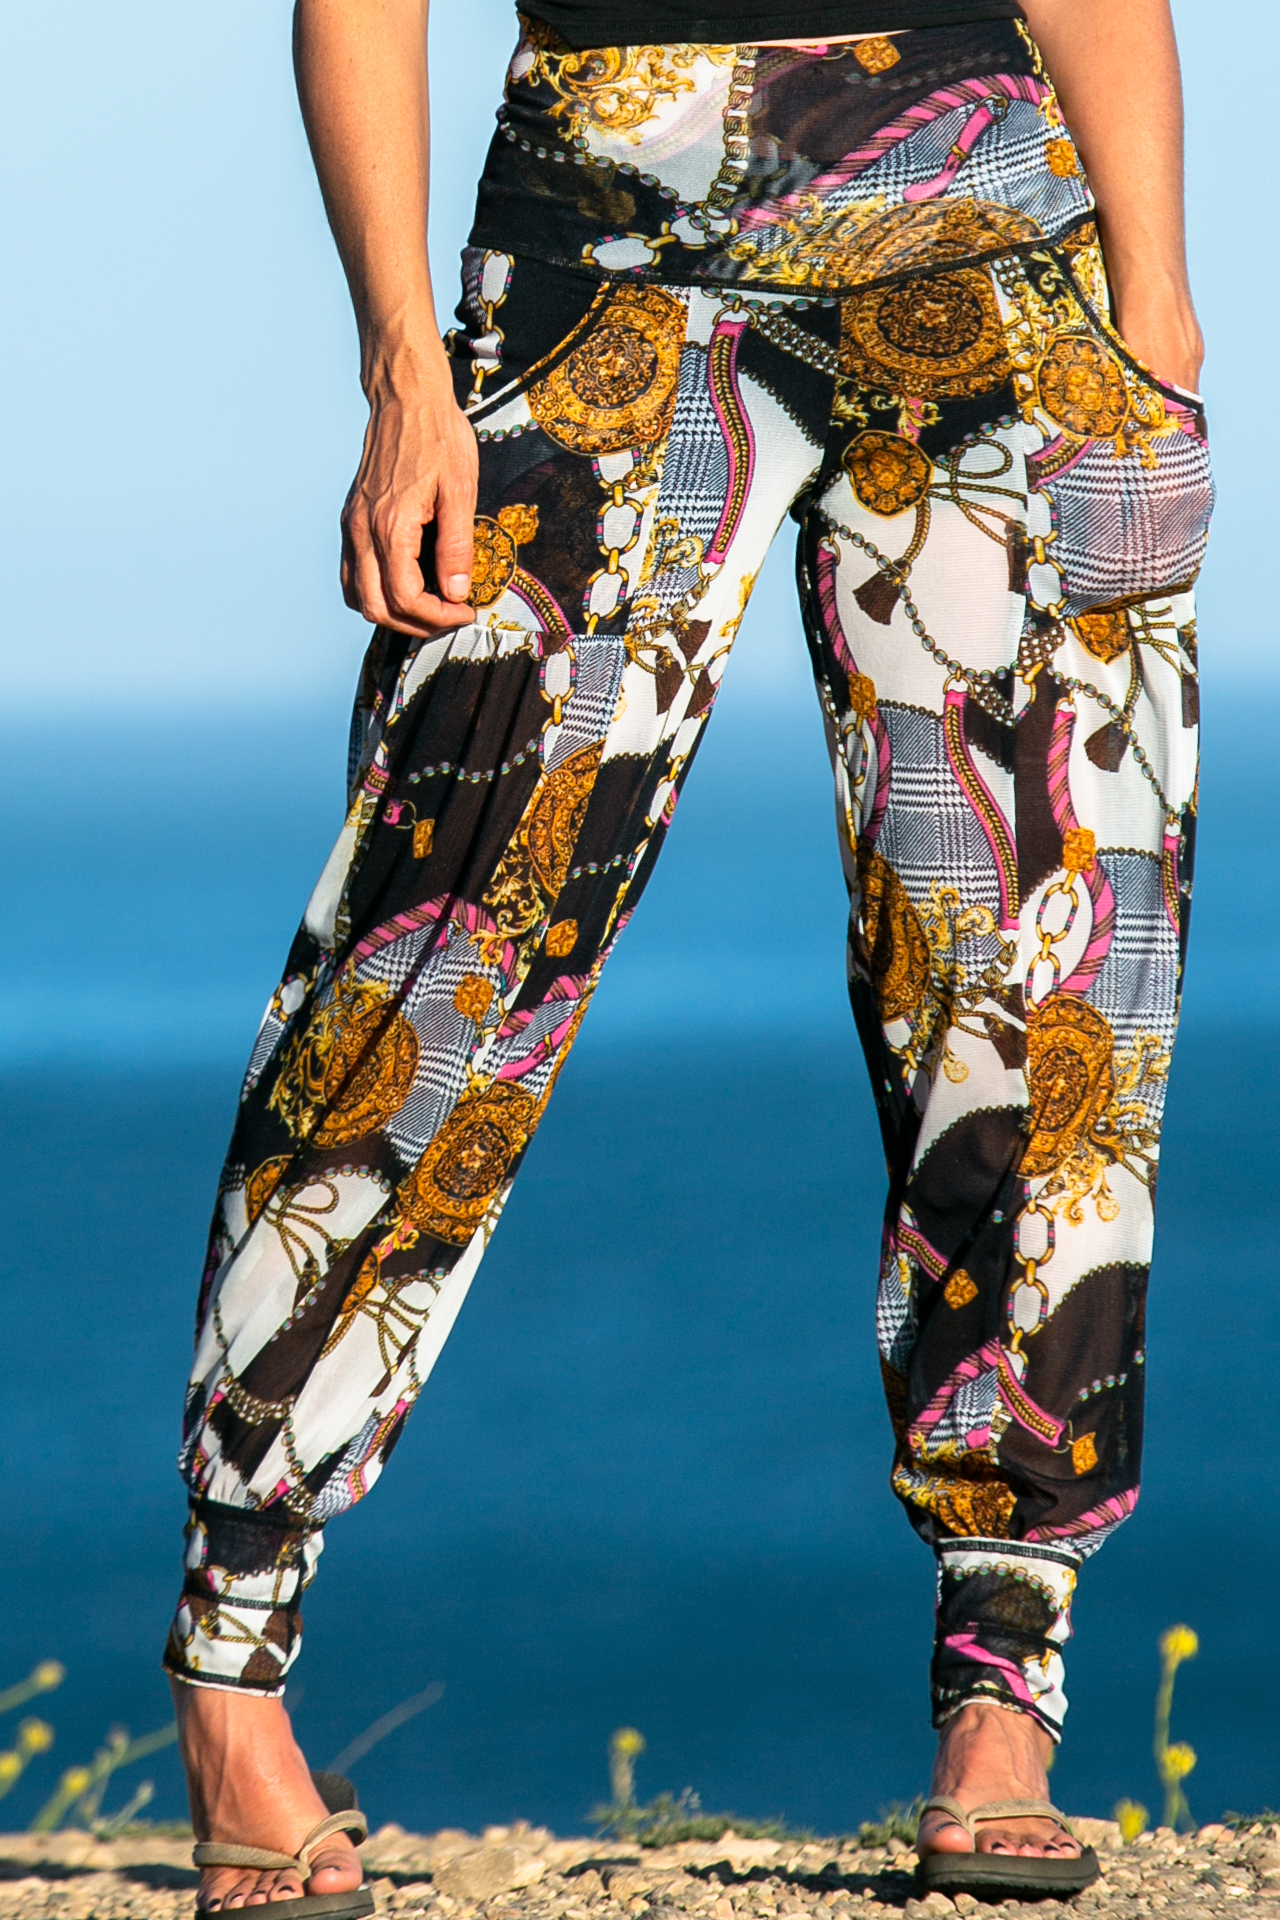 Dreamer Pant in Gucci Moment